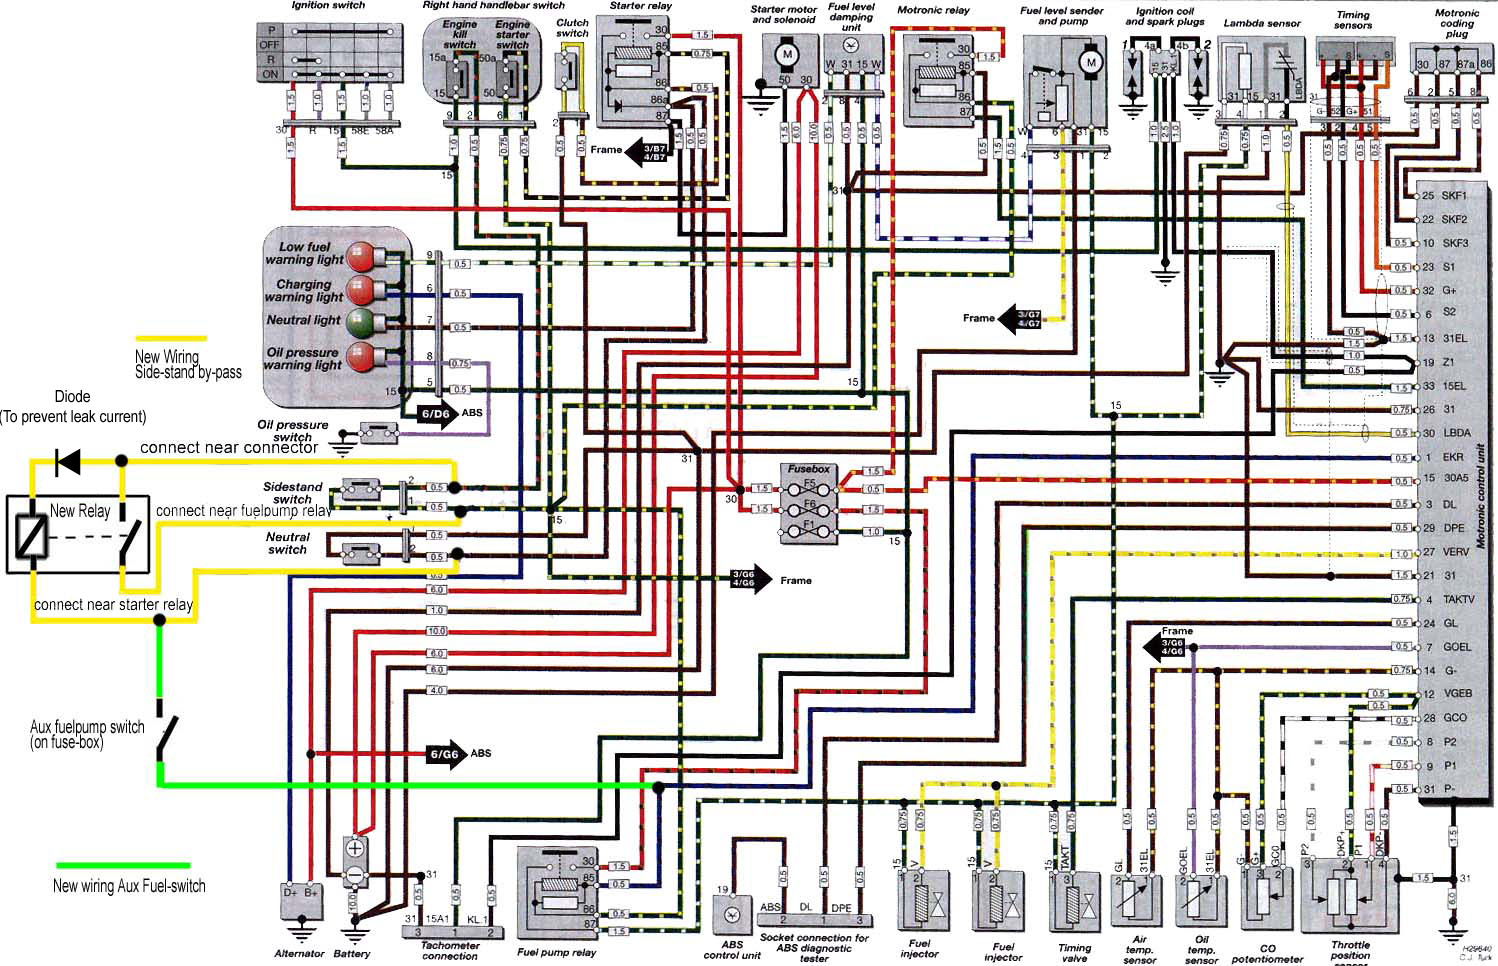 hight resolution of bmw gs 1200 fuse box location wiring diagrams bmw s1000rr bmw gs 1200 wiring diagram